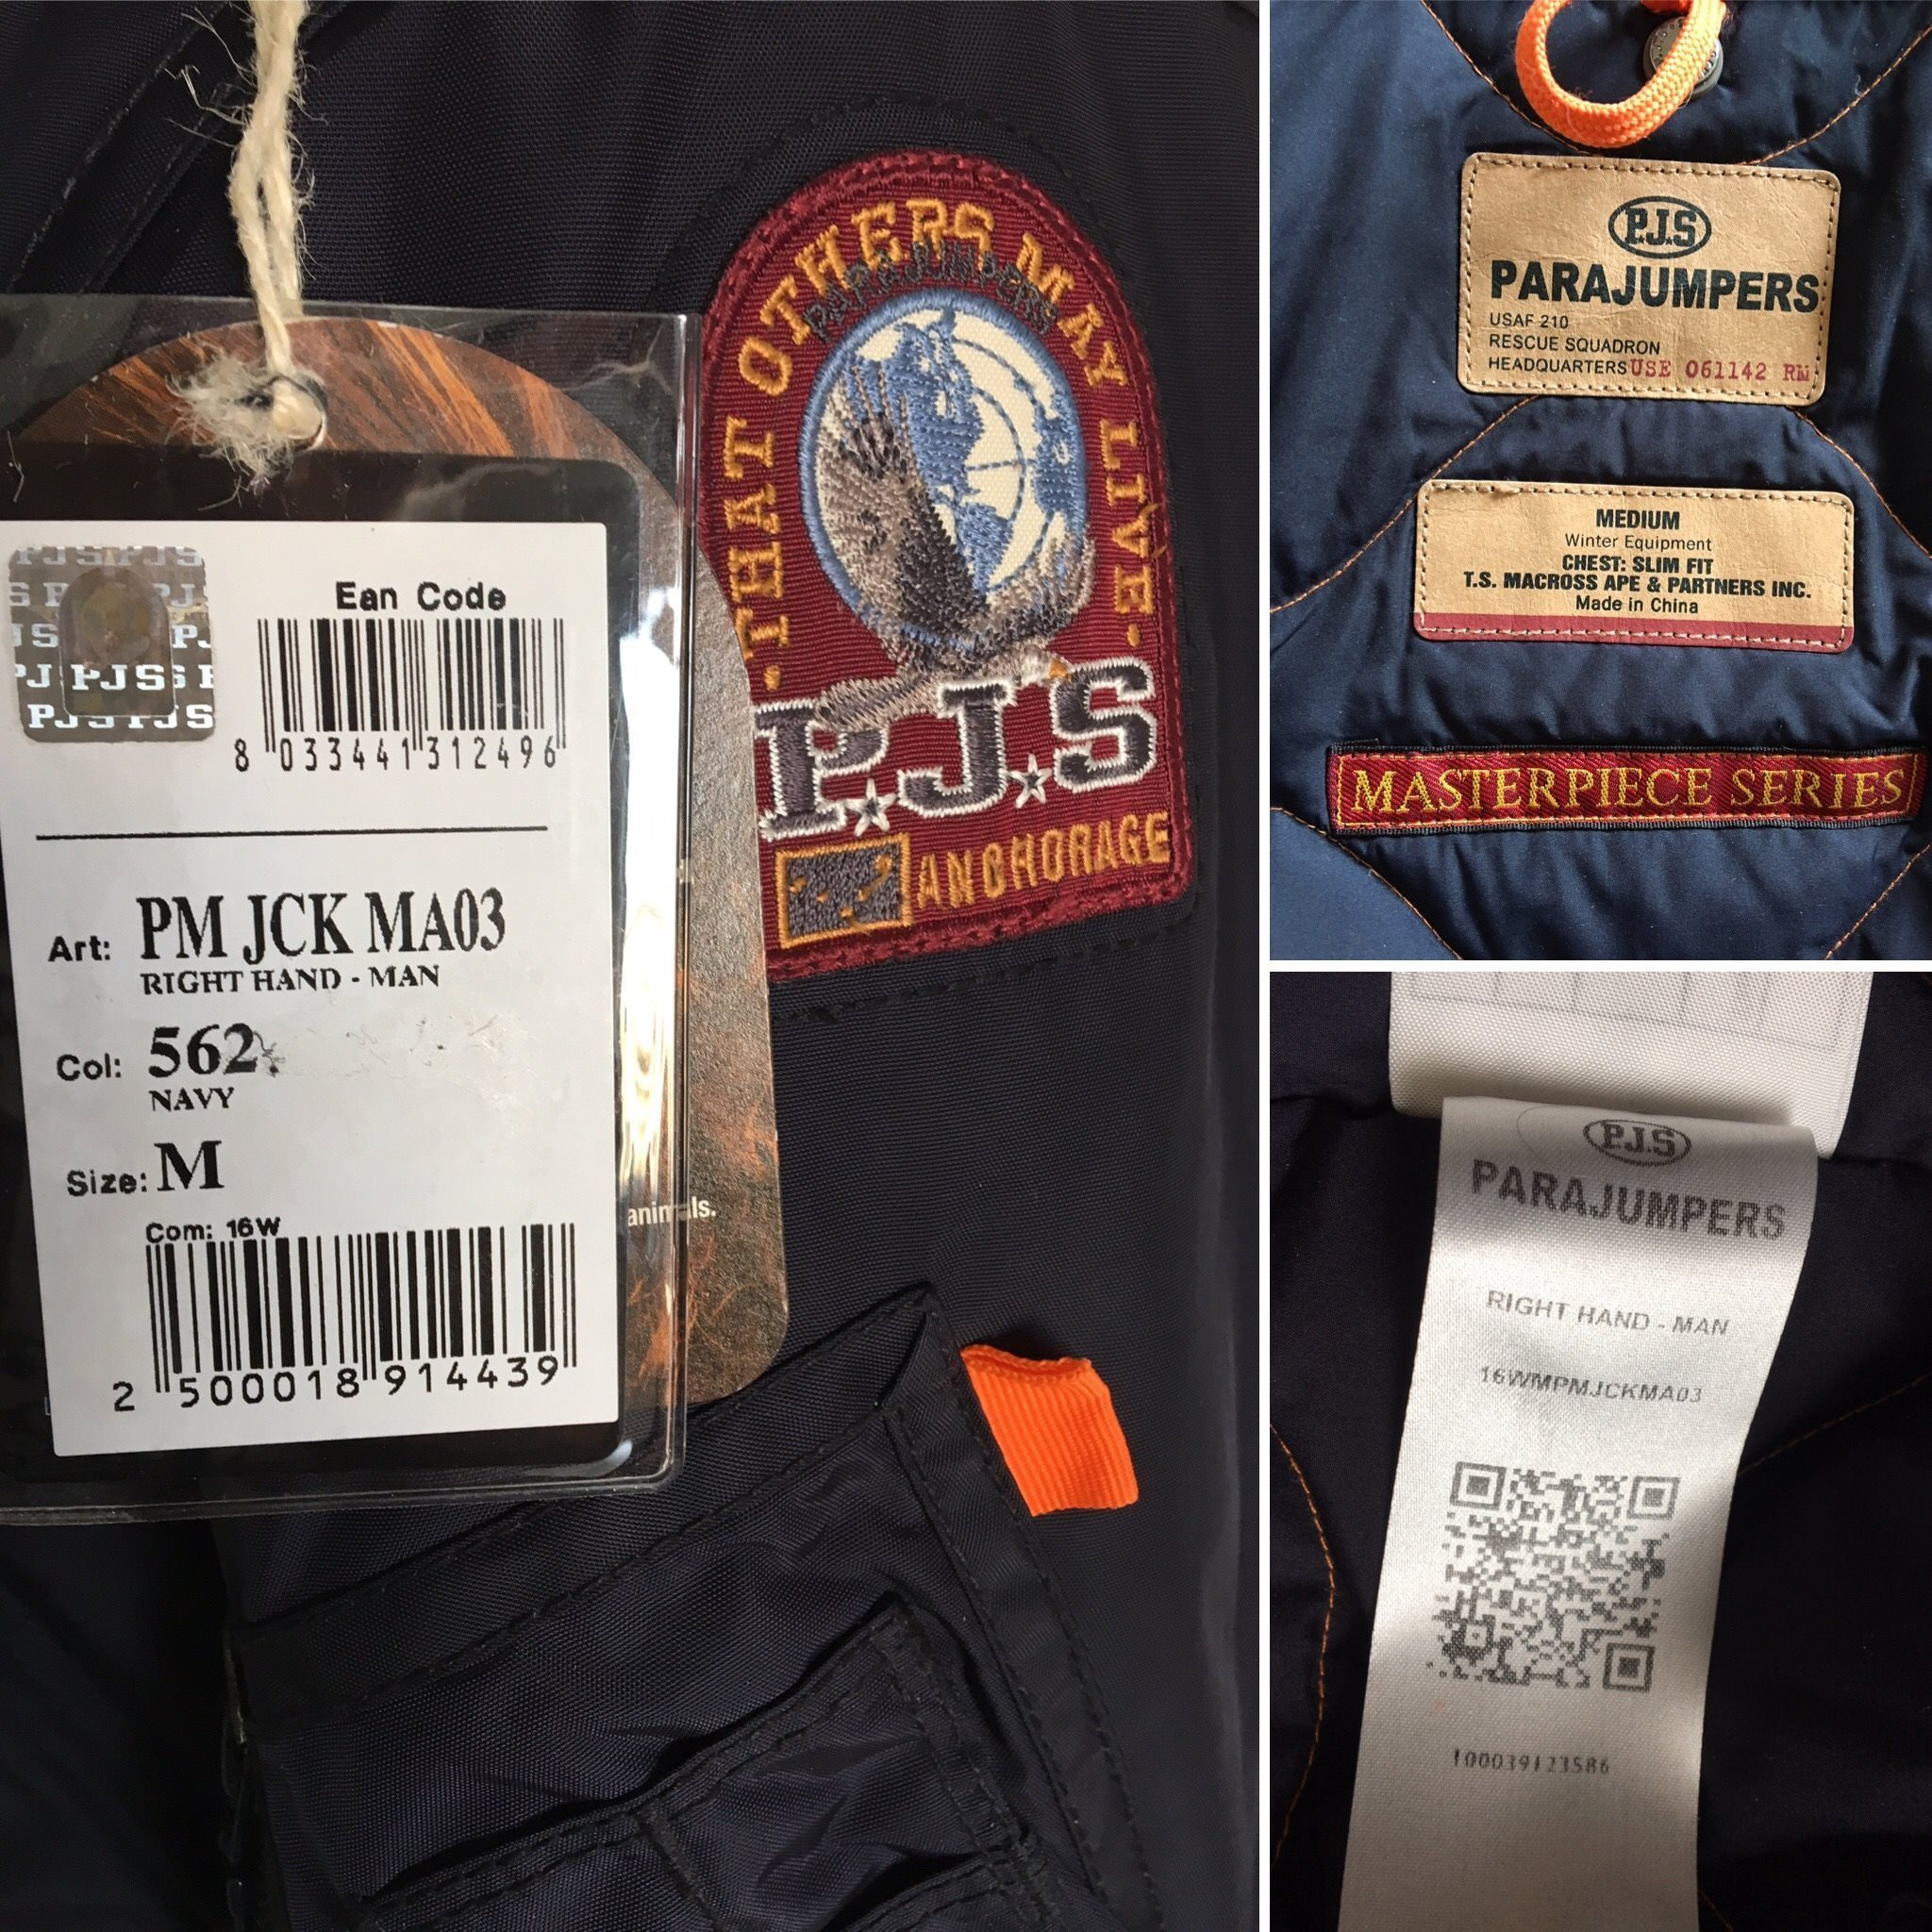 parajumpers ean code